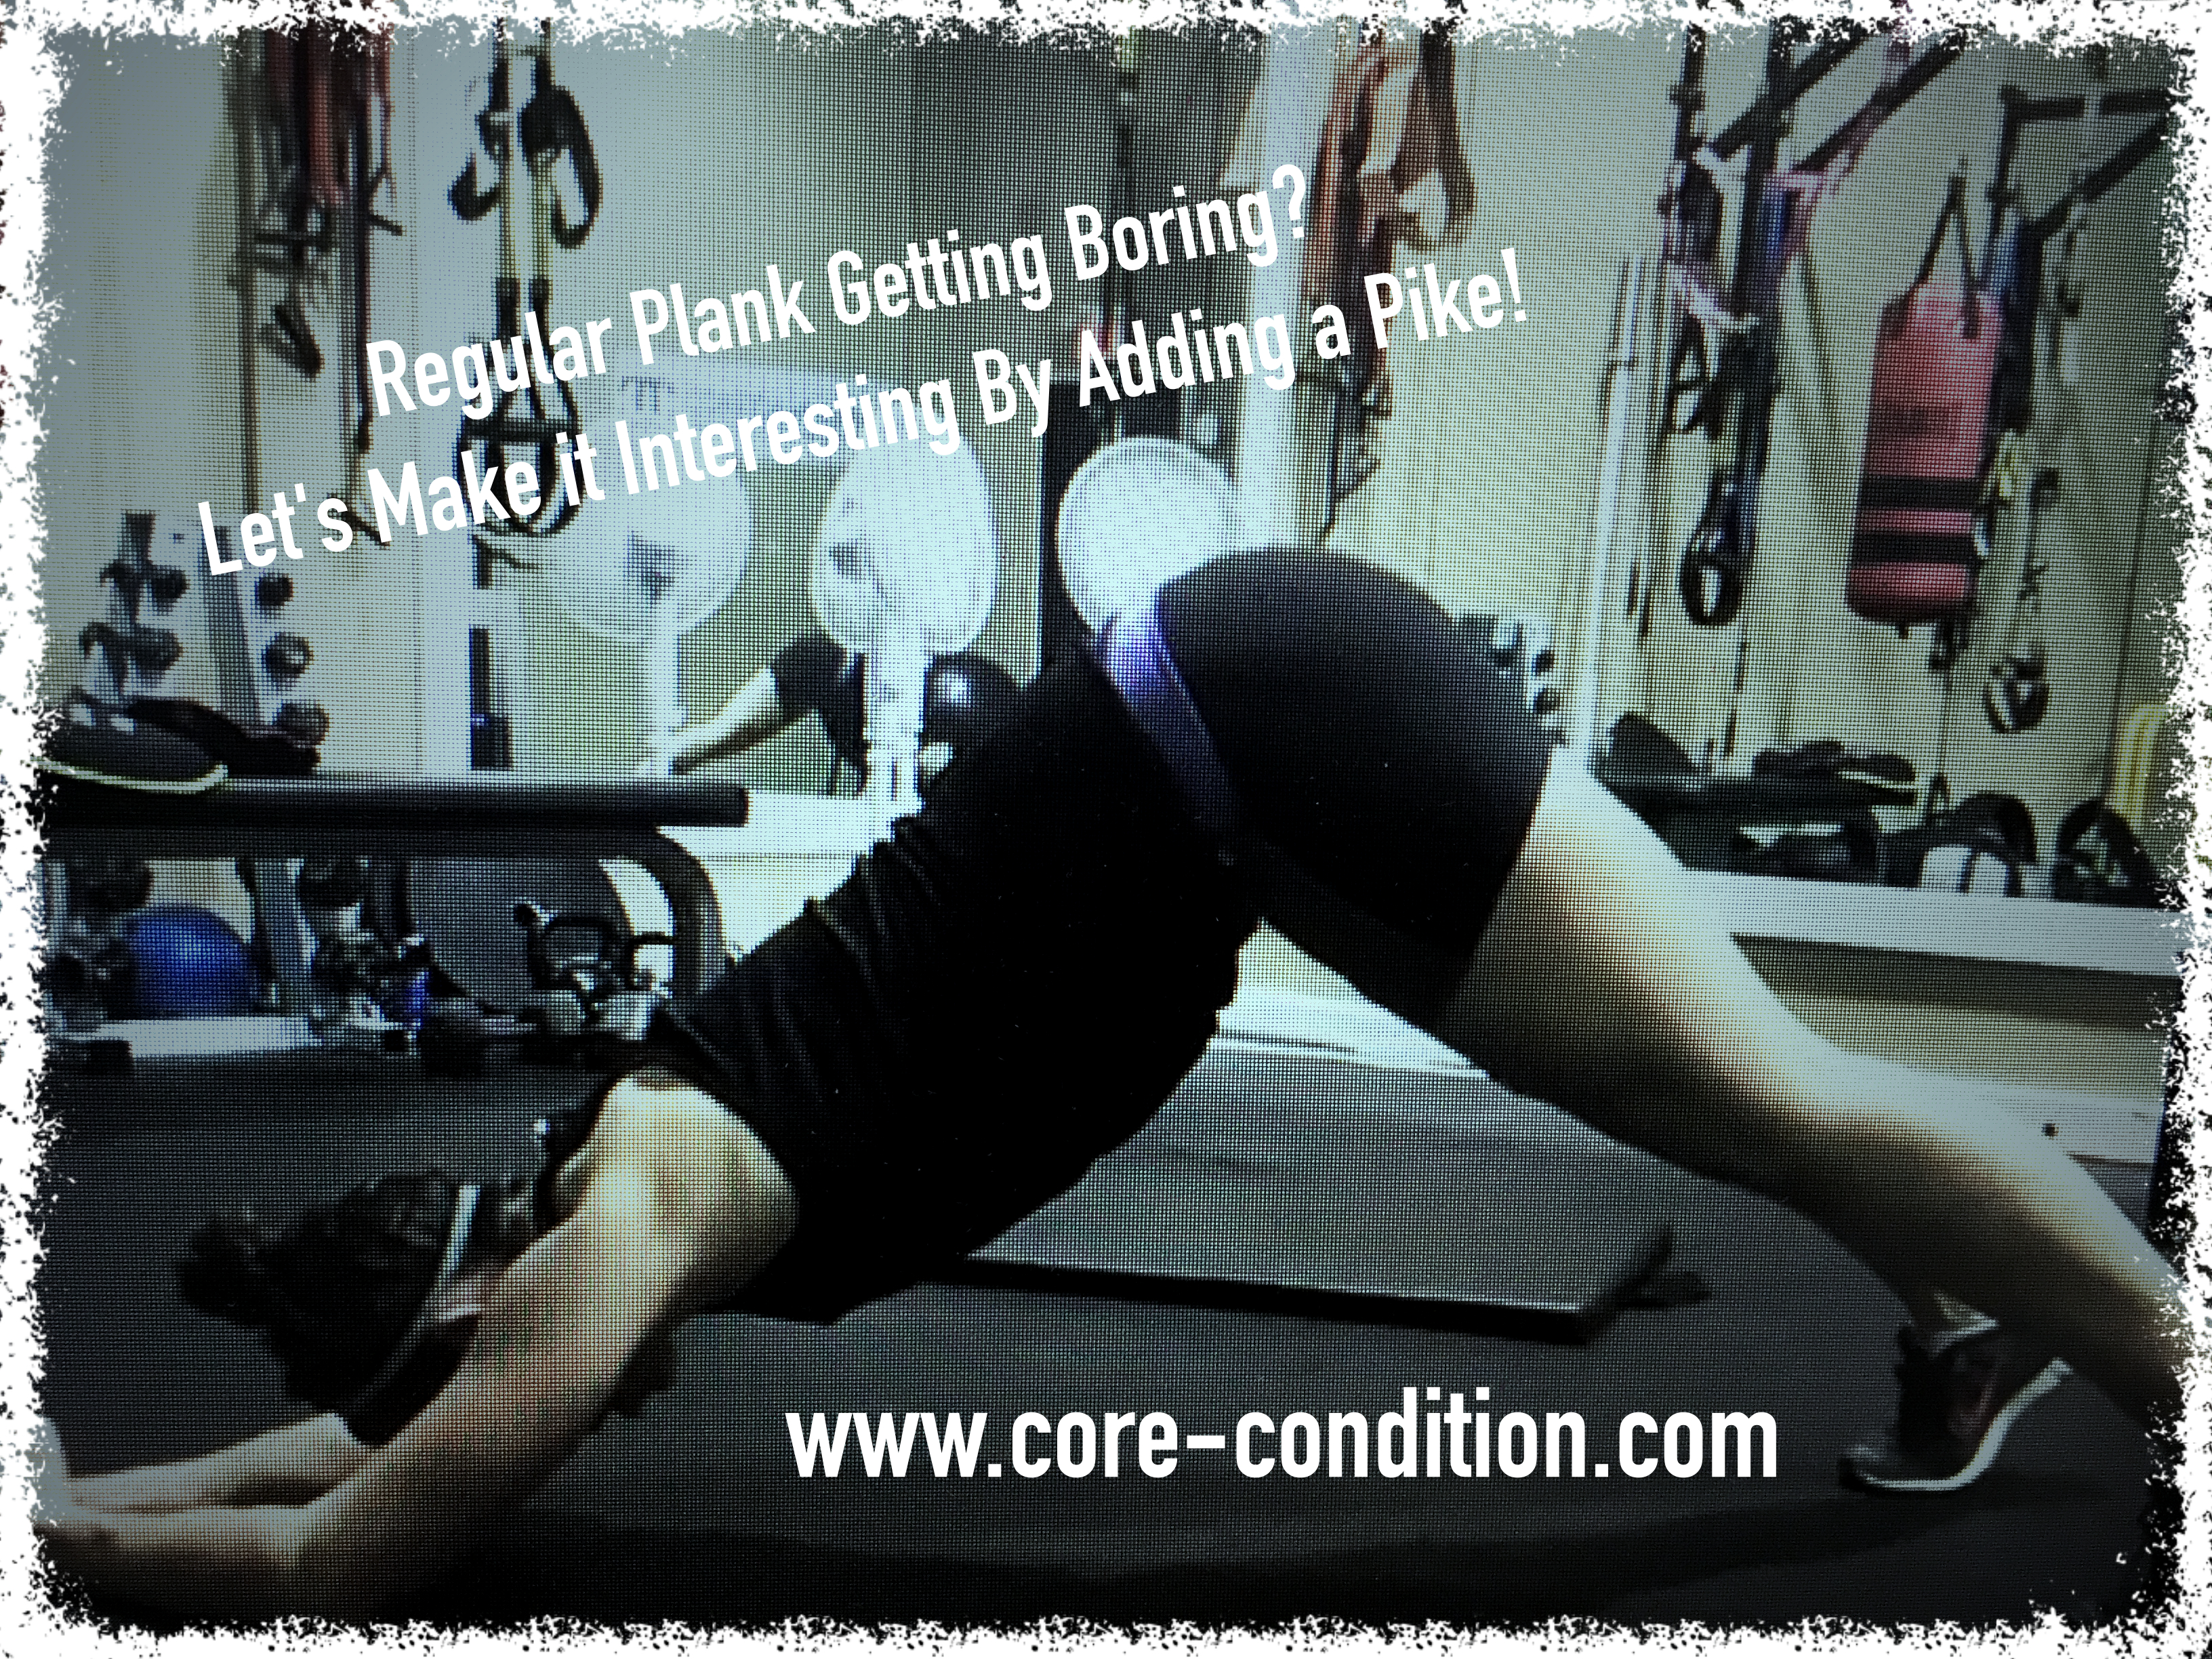 Regular Plank Getting Boring? Let's Make It Interesting By Adding a Pike!